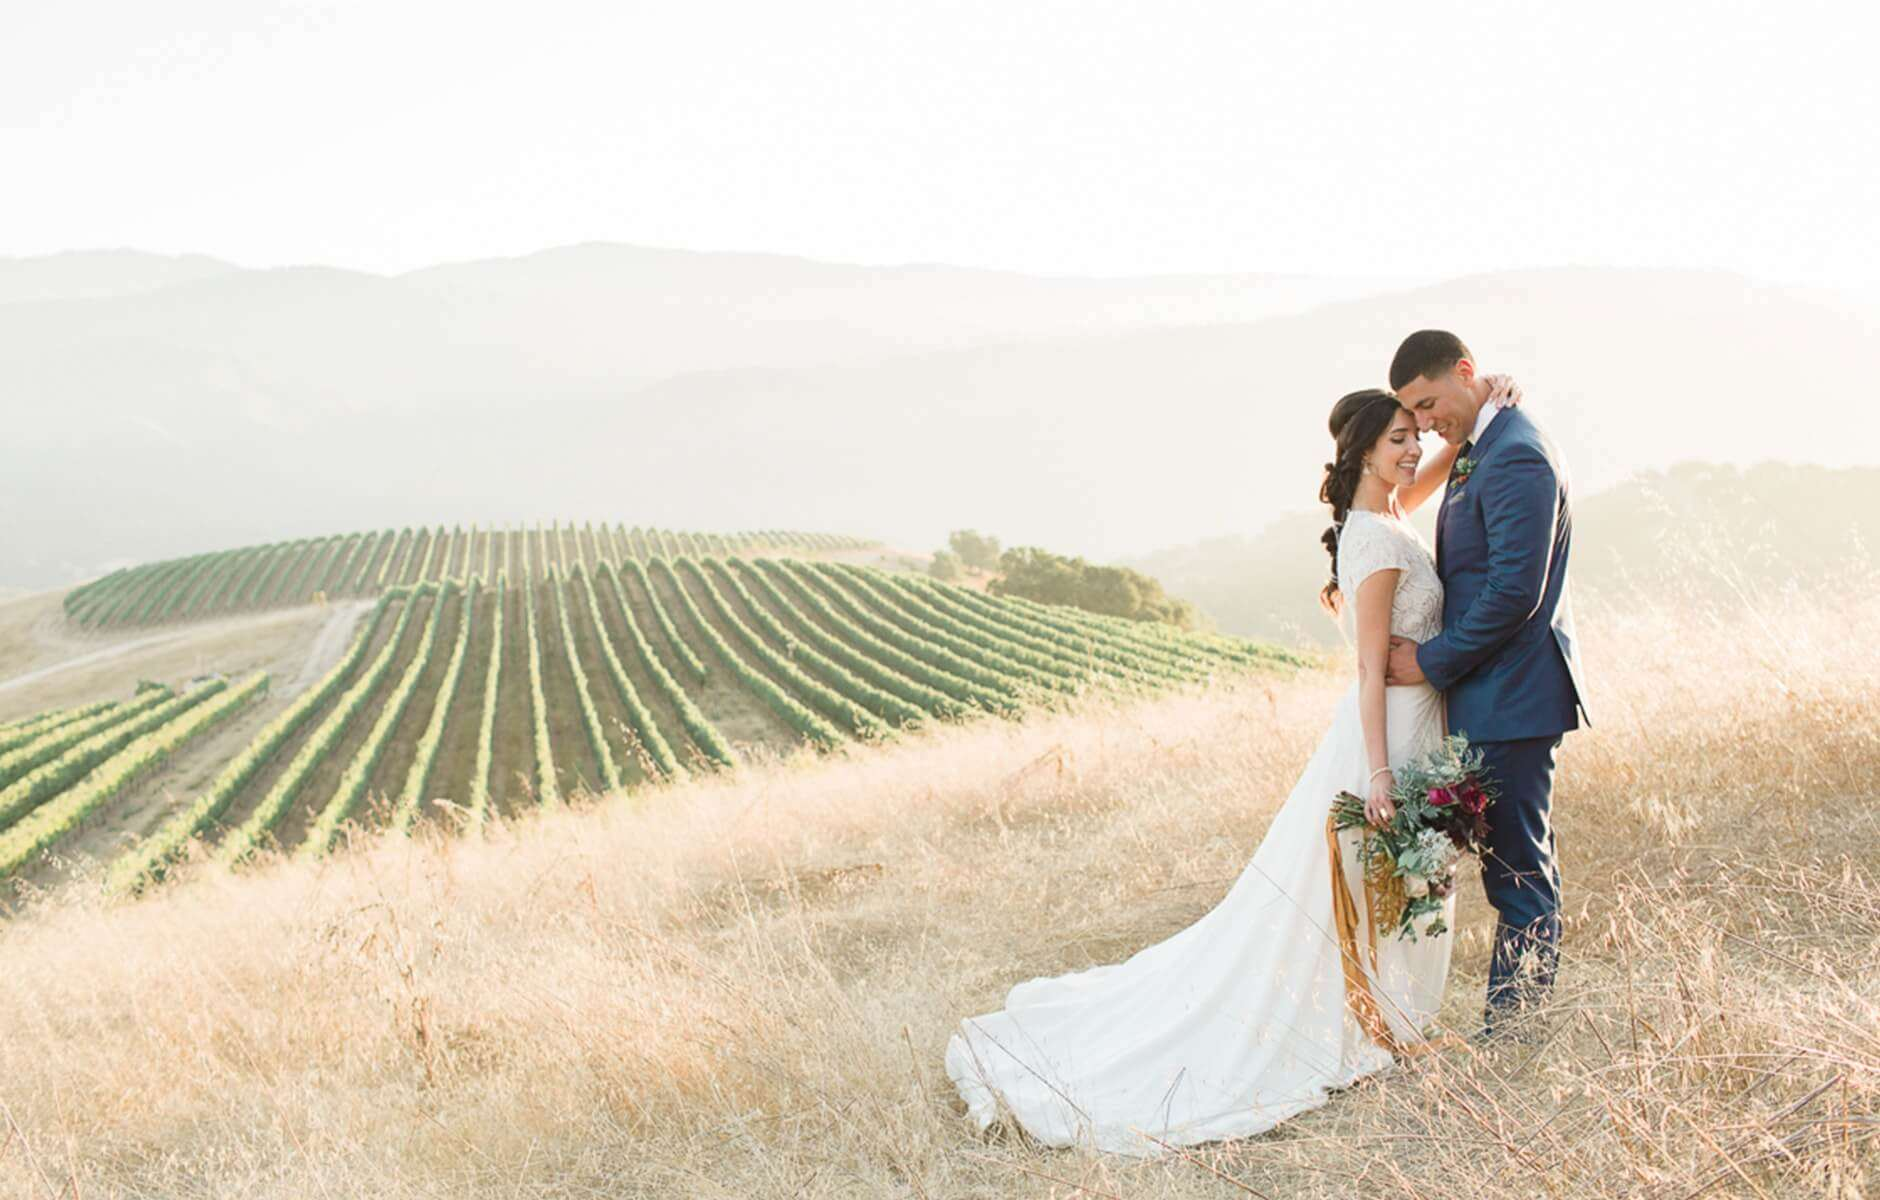 Read about a real Minted wedding in Carmel, California